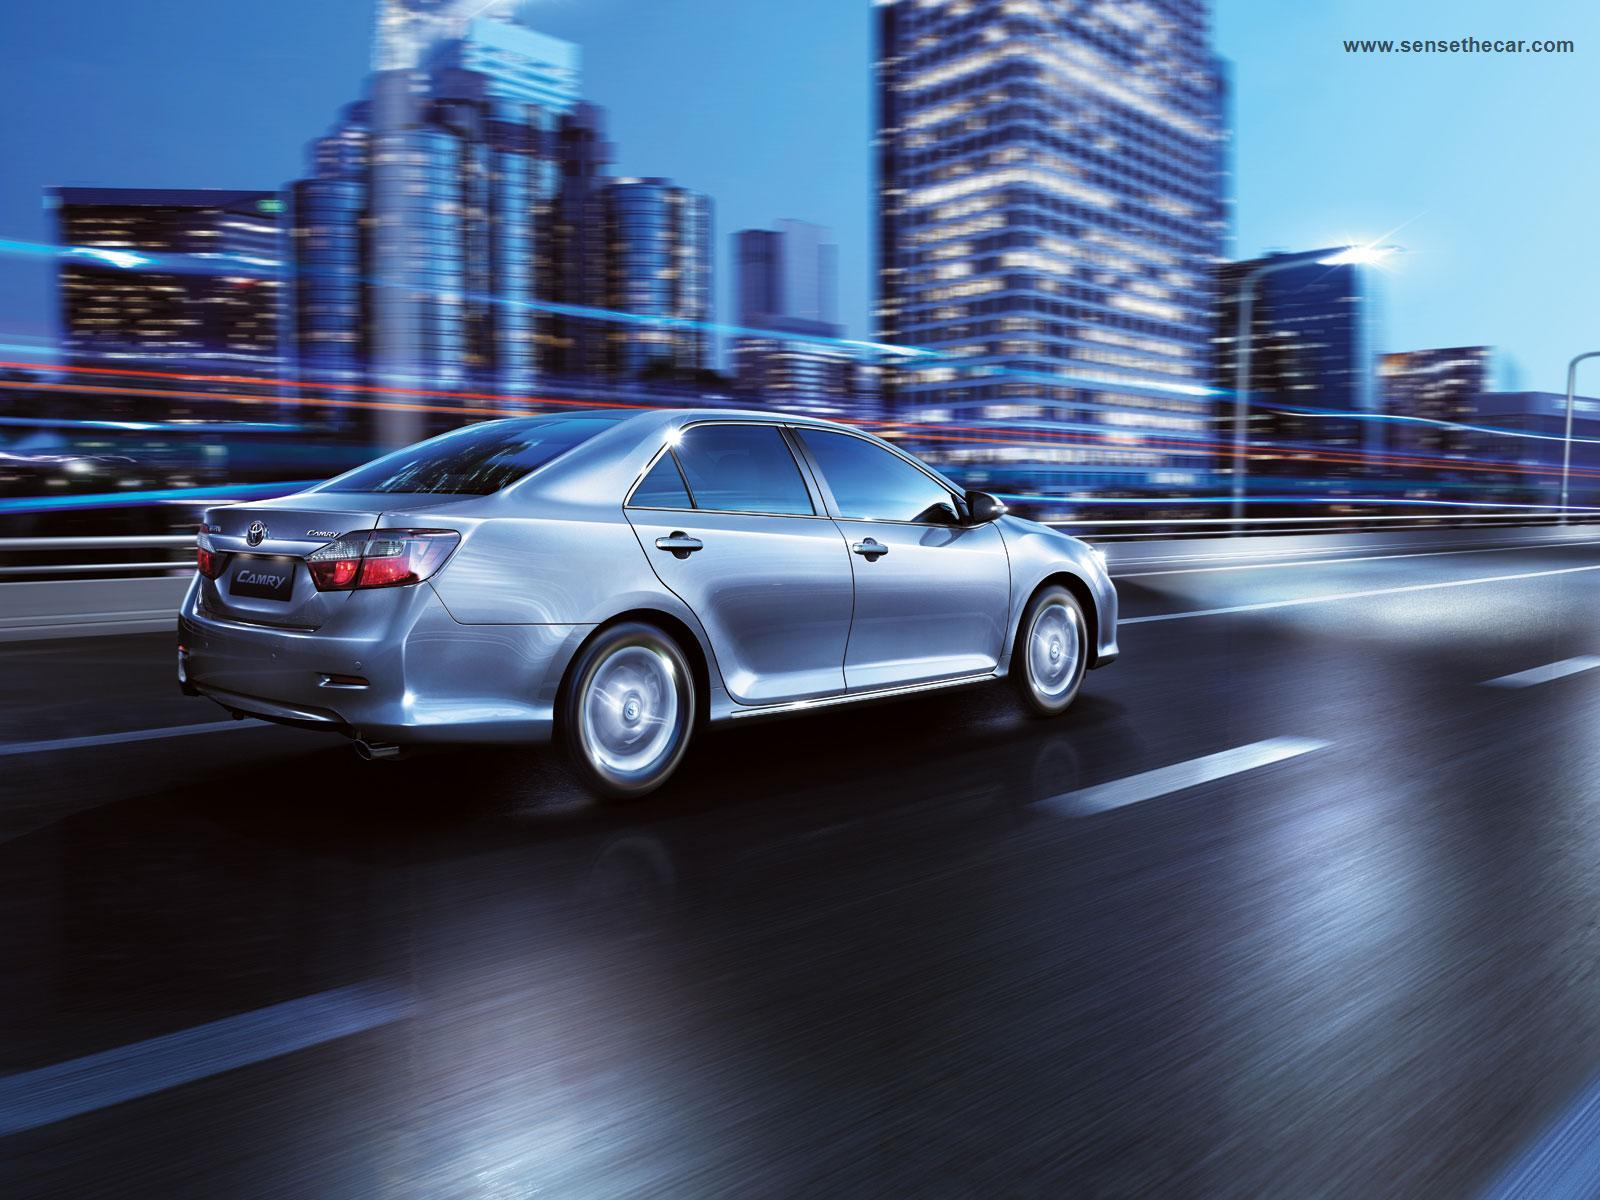 Toyota Camry Wallpapers 28 1600x1200